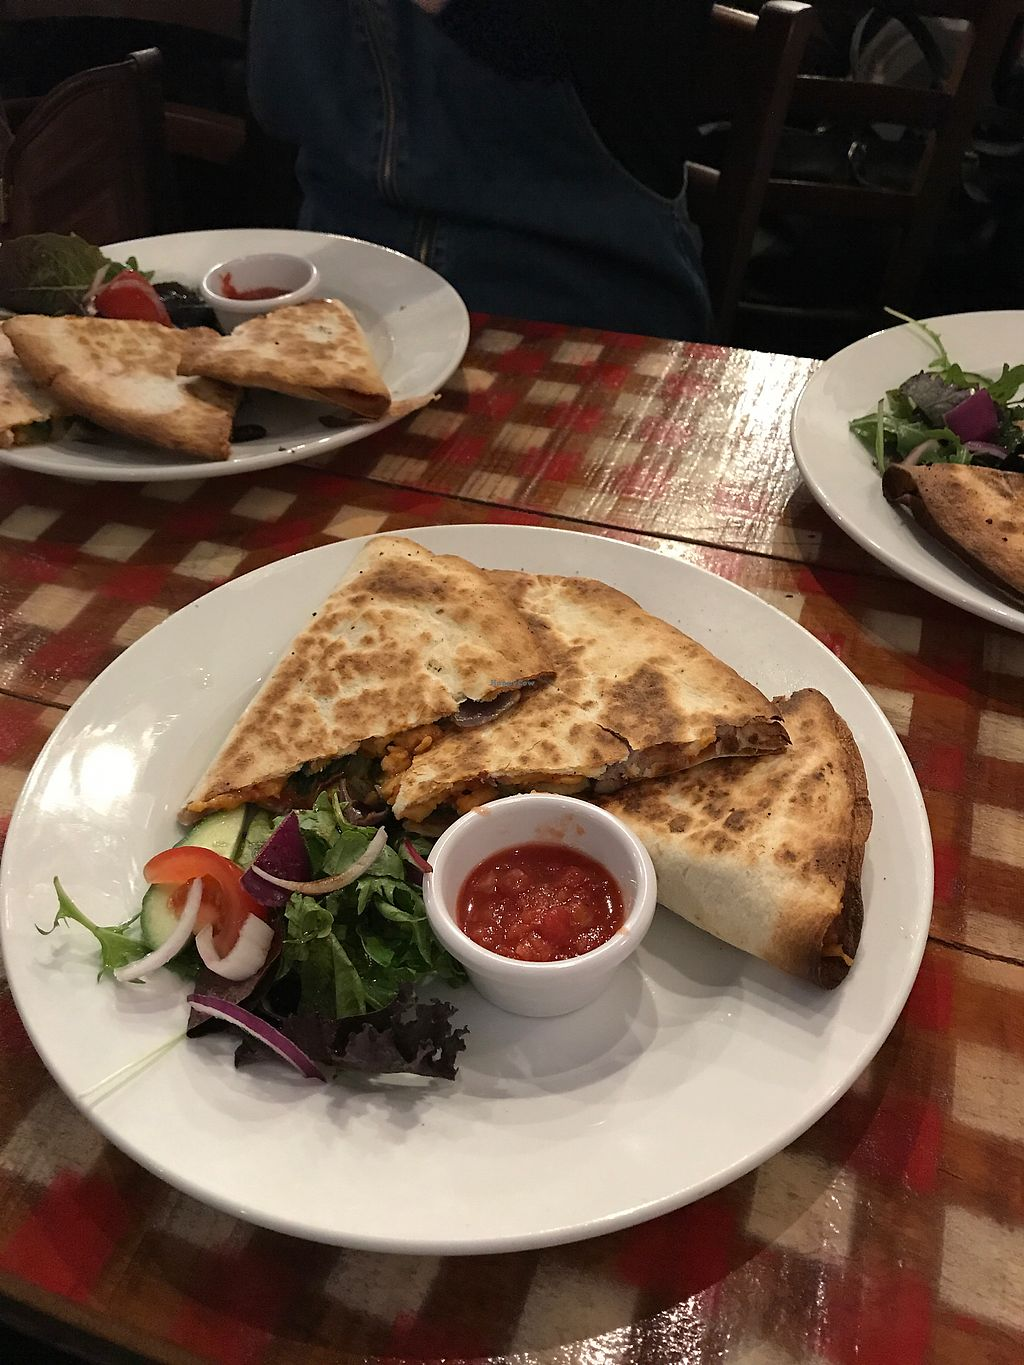 """Photo of Fat Freddy's  by <a href=""""/members/profile/AlannaghMasterson"""">AlannaghMasterson</a> <br/>vegan quesadilla- MASSIVE portions, really nice!  <br/> August 16, 2017  - <a href='/contact/abuse/image/40910/293260'>Report</a>"""